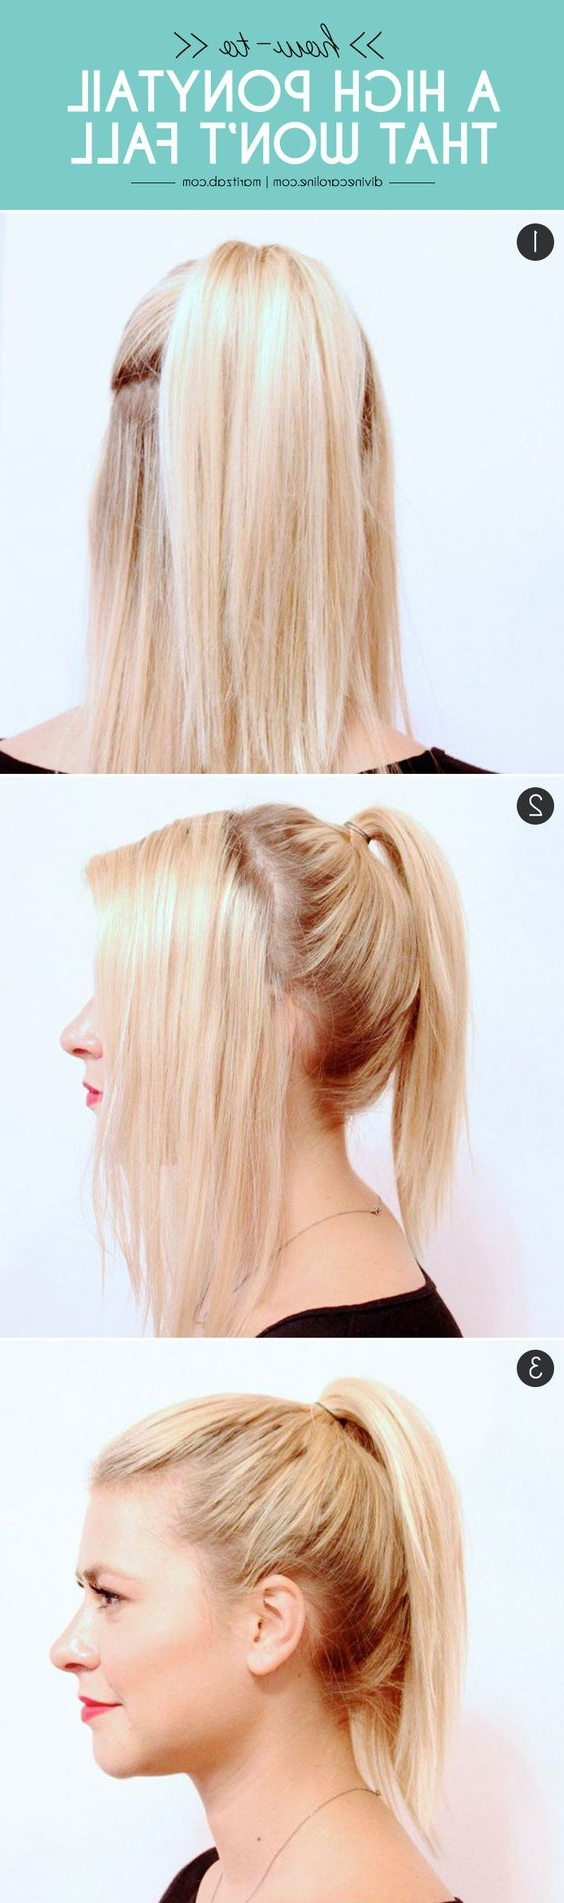 2017 High Ponytail Hairstyles With Accessory Within 18 High Ponytail Hairstyles You Need To Try For Spring 2017 – Gurl (View 5 of 20)